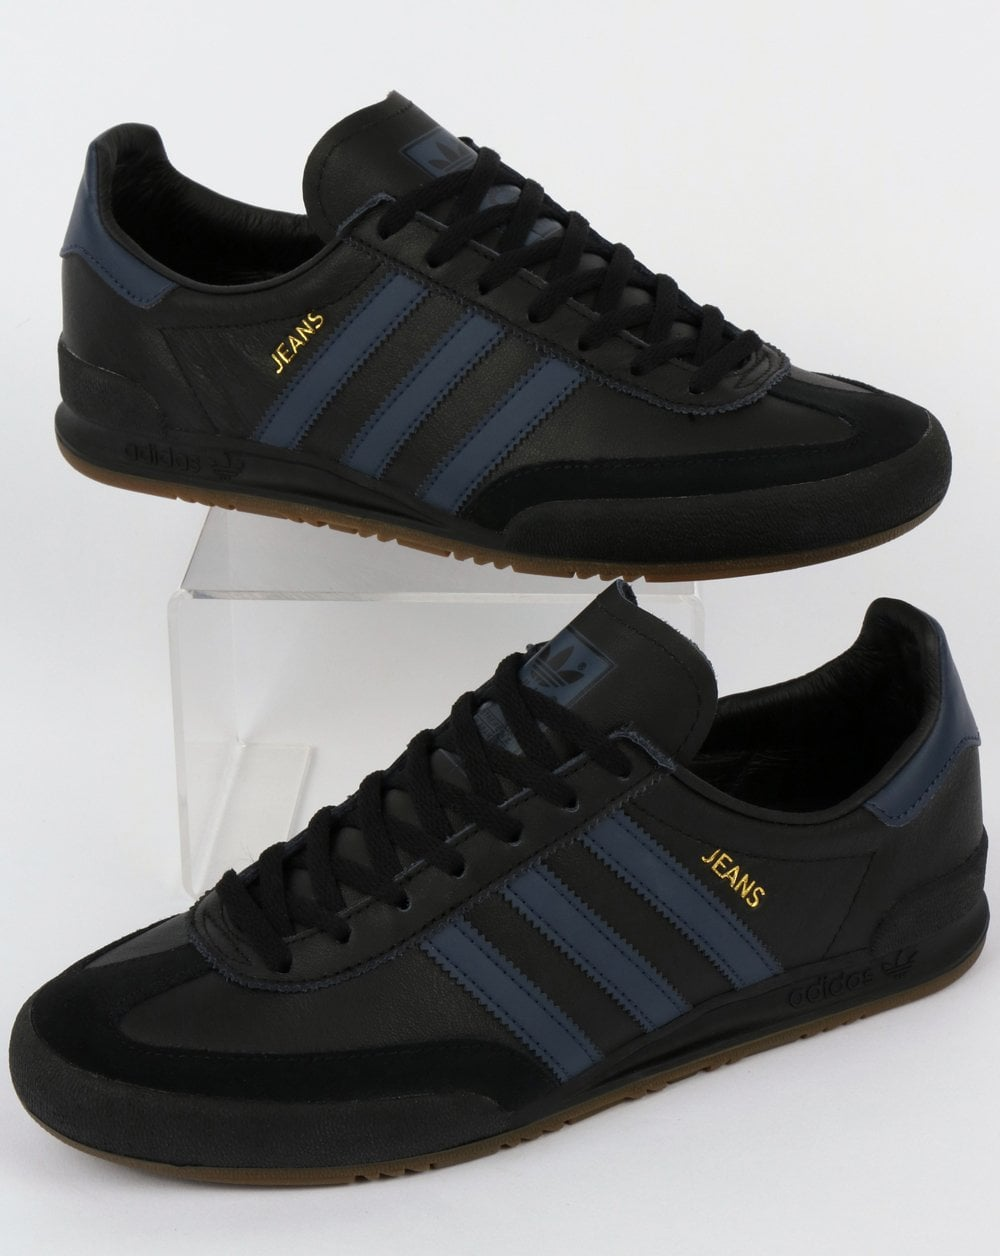 Adidas Black Jeans Trainers Jeans Leather Adidas Adidas Leather Trainers Leather Jeans Trainers Black A54jRL